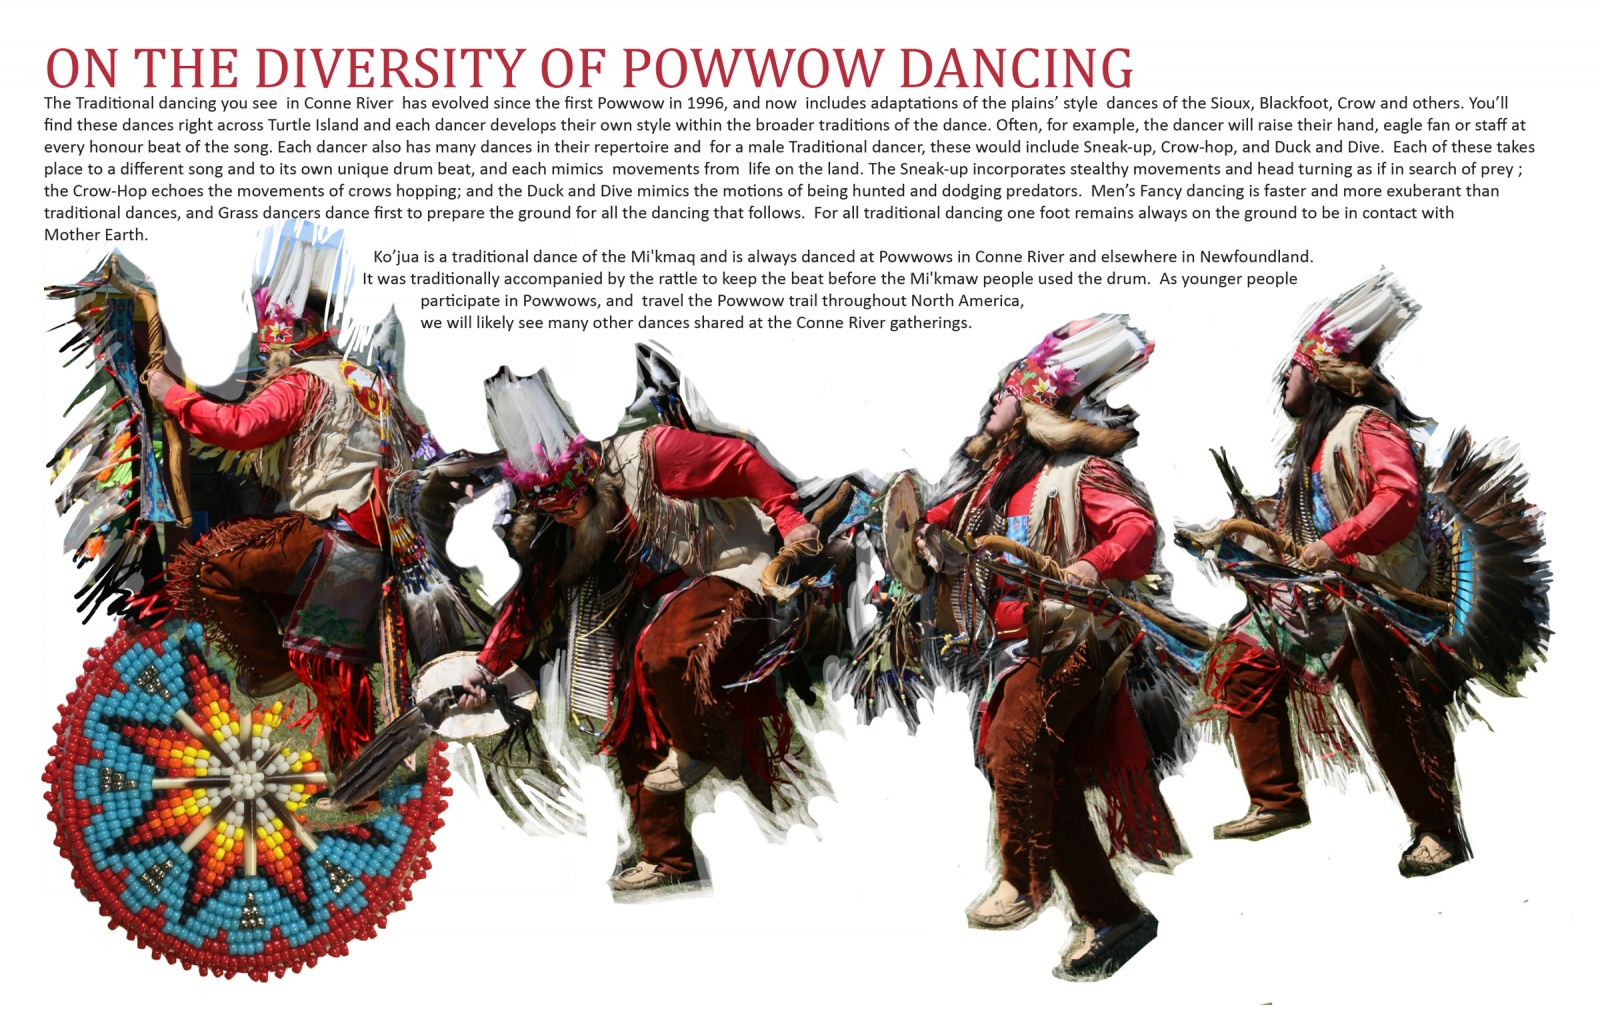 On the Diversity of Powwow Dancing